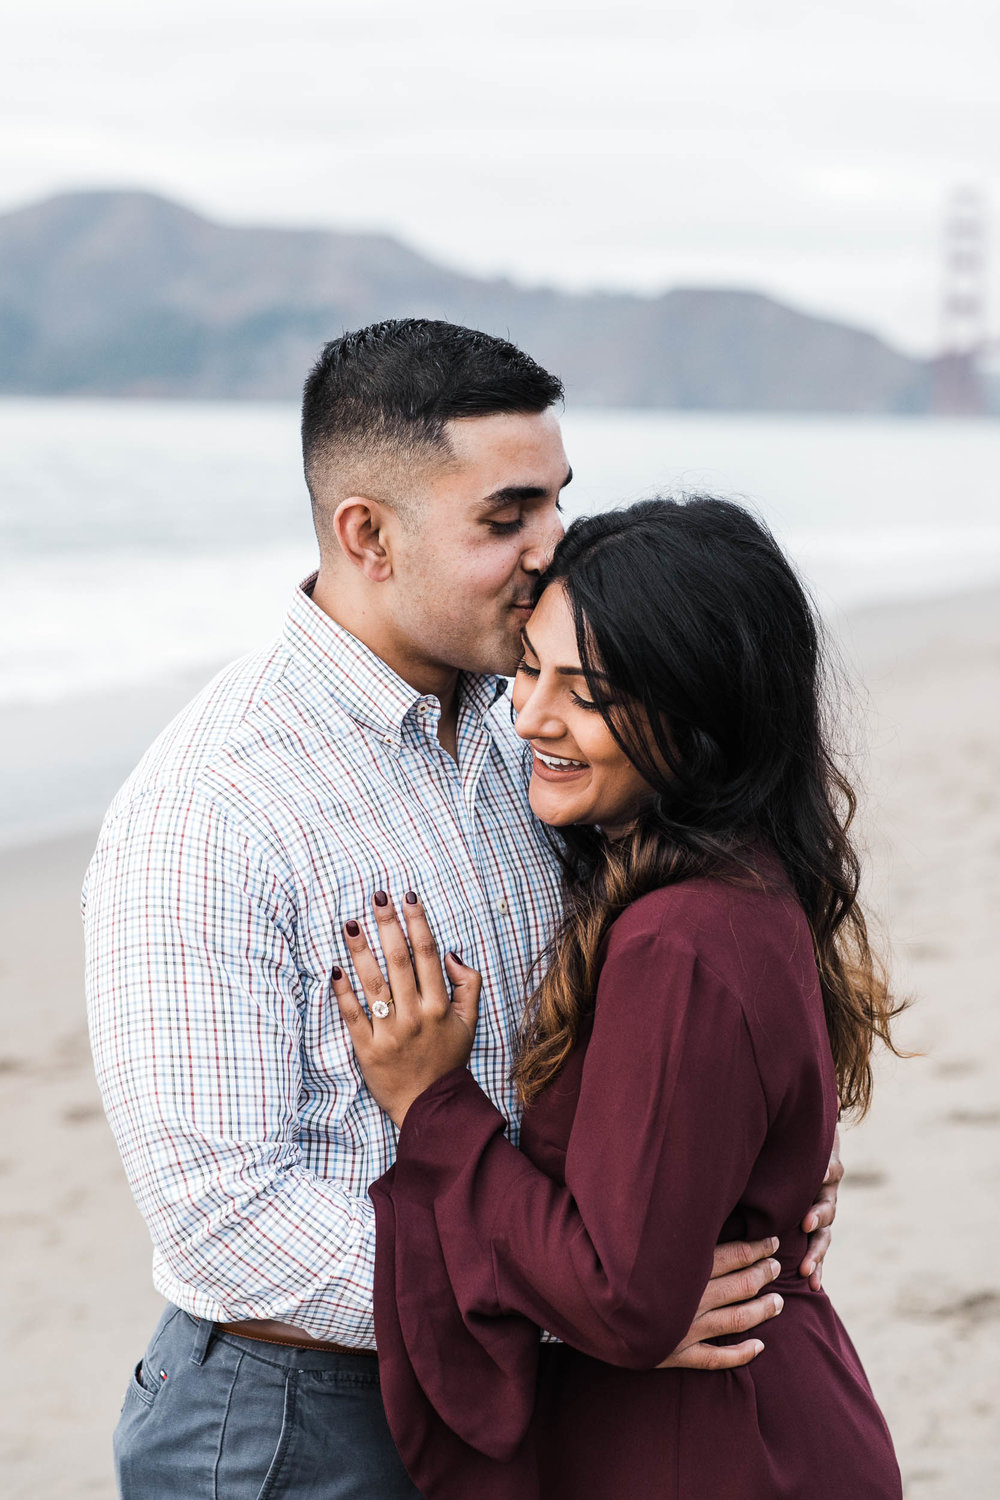 112017_D+S Proposal_Baker Beach_Buena Lane Photography_205.jpg